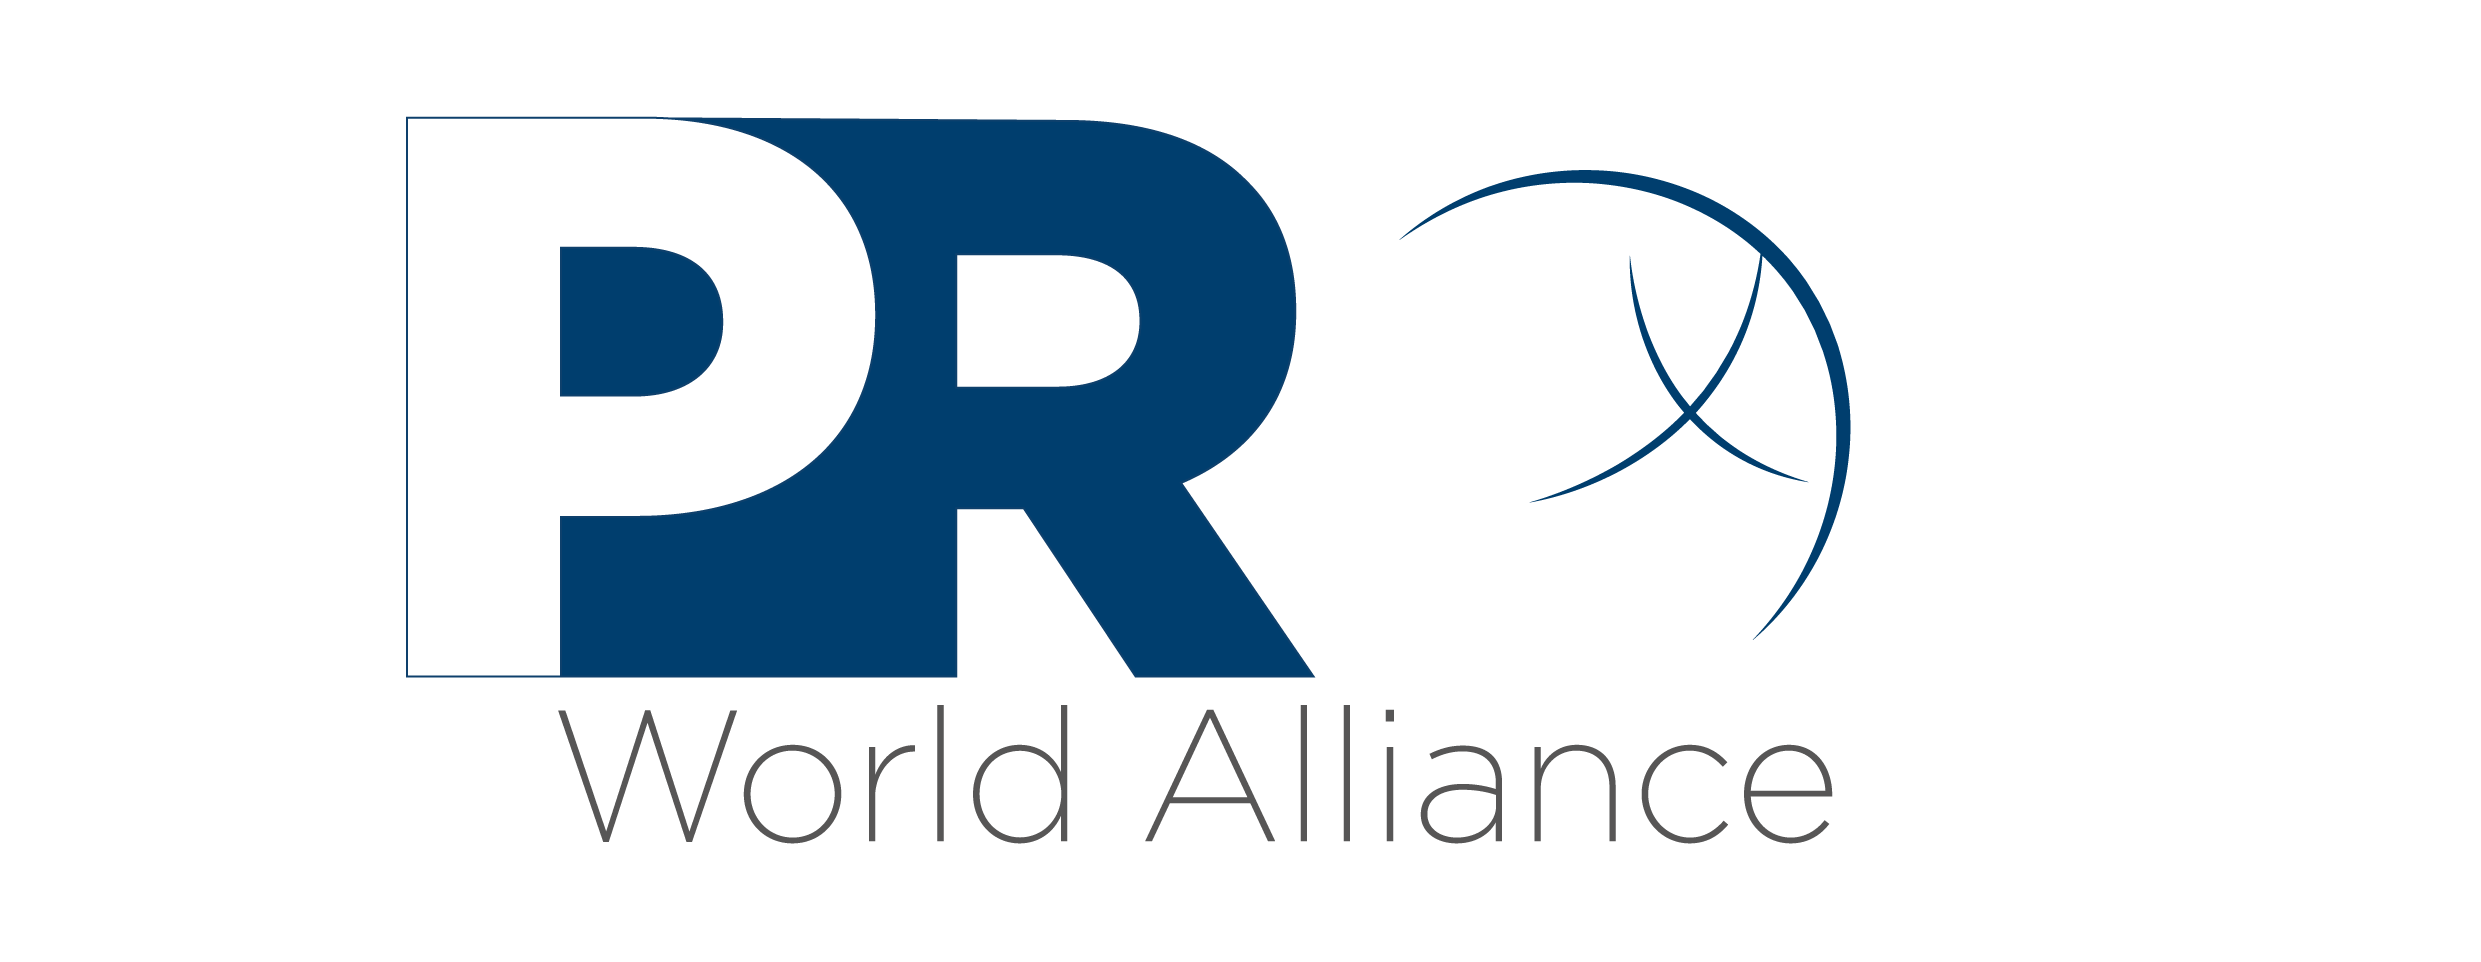 PR World Alliance